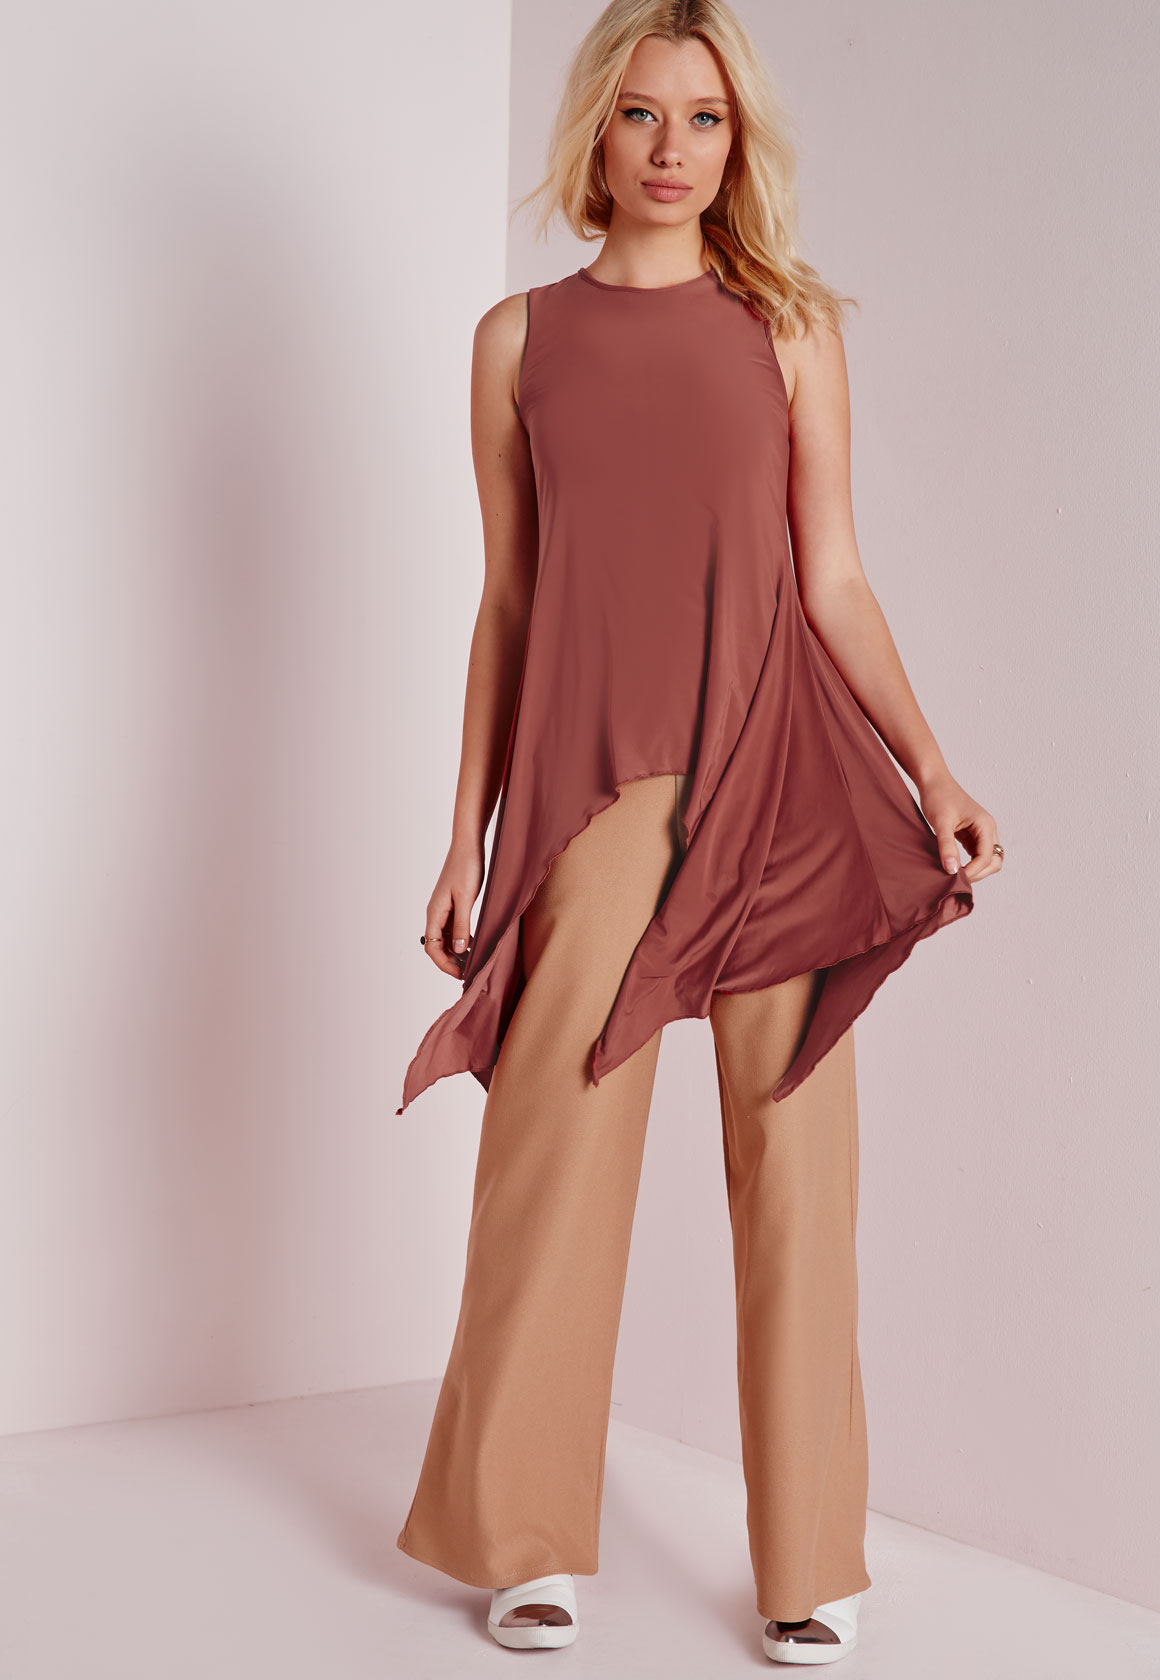 Shop Missguided online and buy Asymmetric Hem Top Rust by Missguided